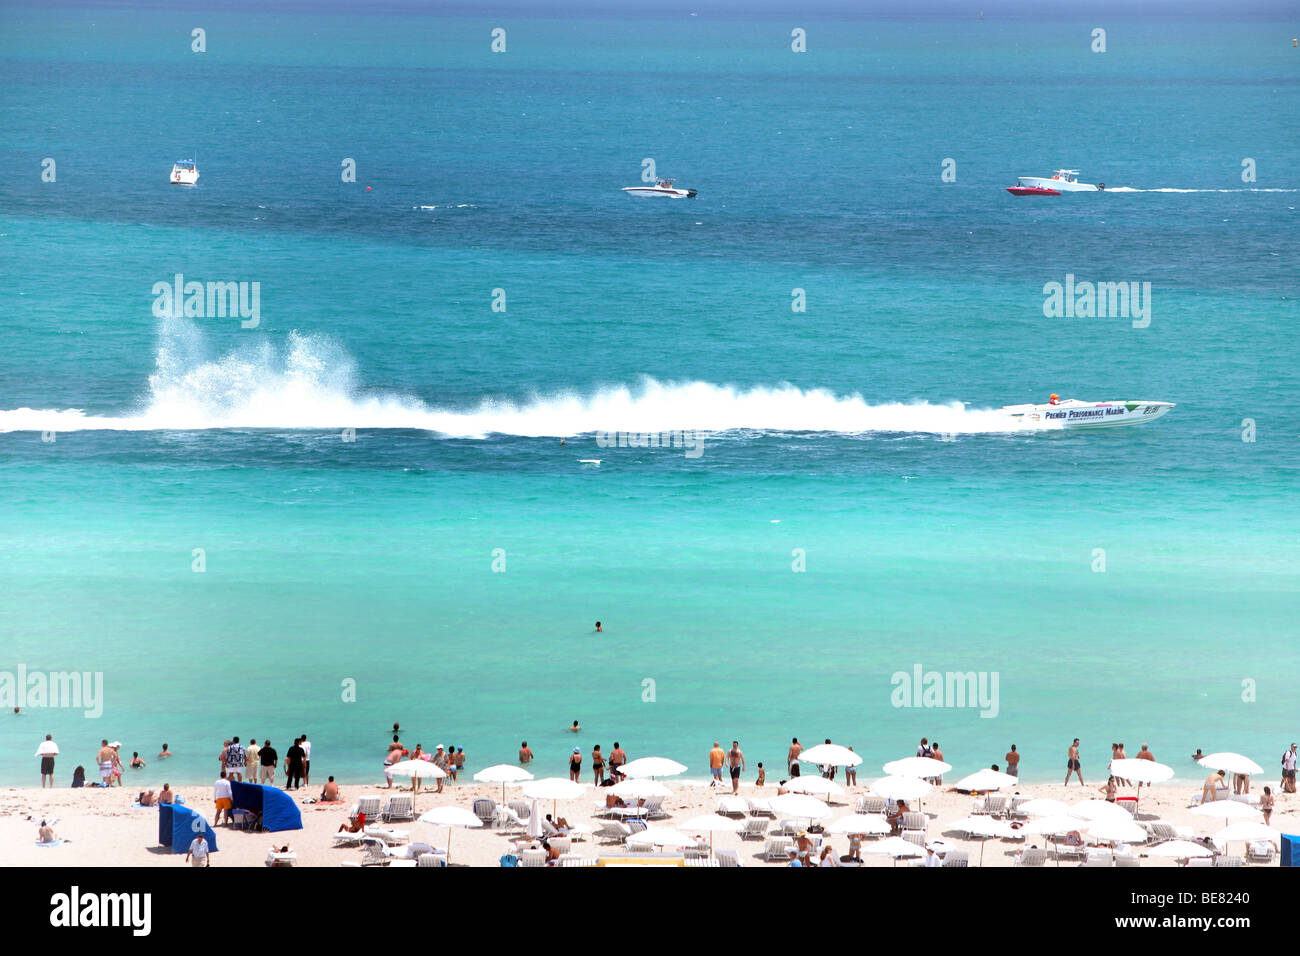 People On The Beach Watching A Motor Boat Racing South Miami Florida USA